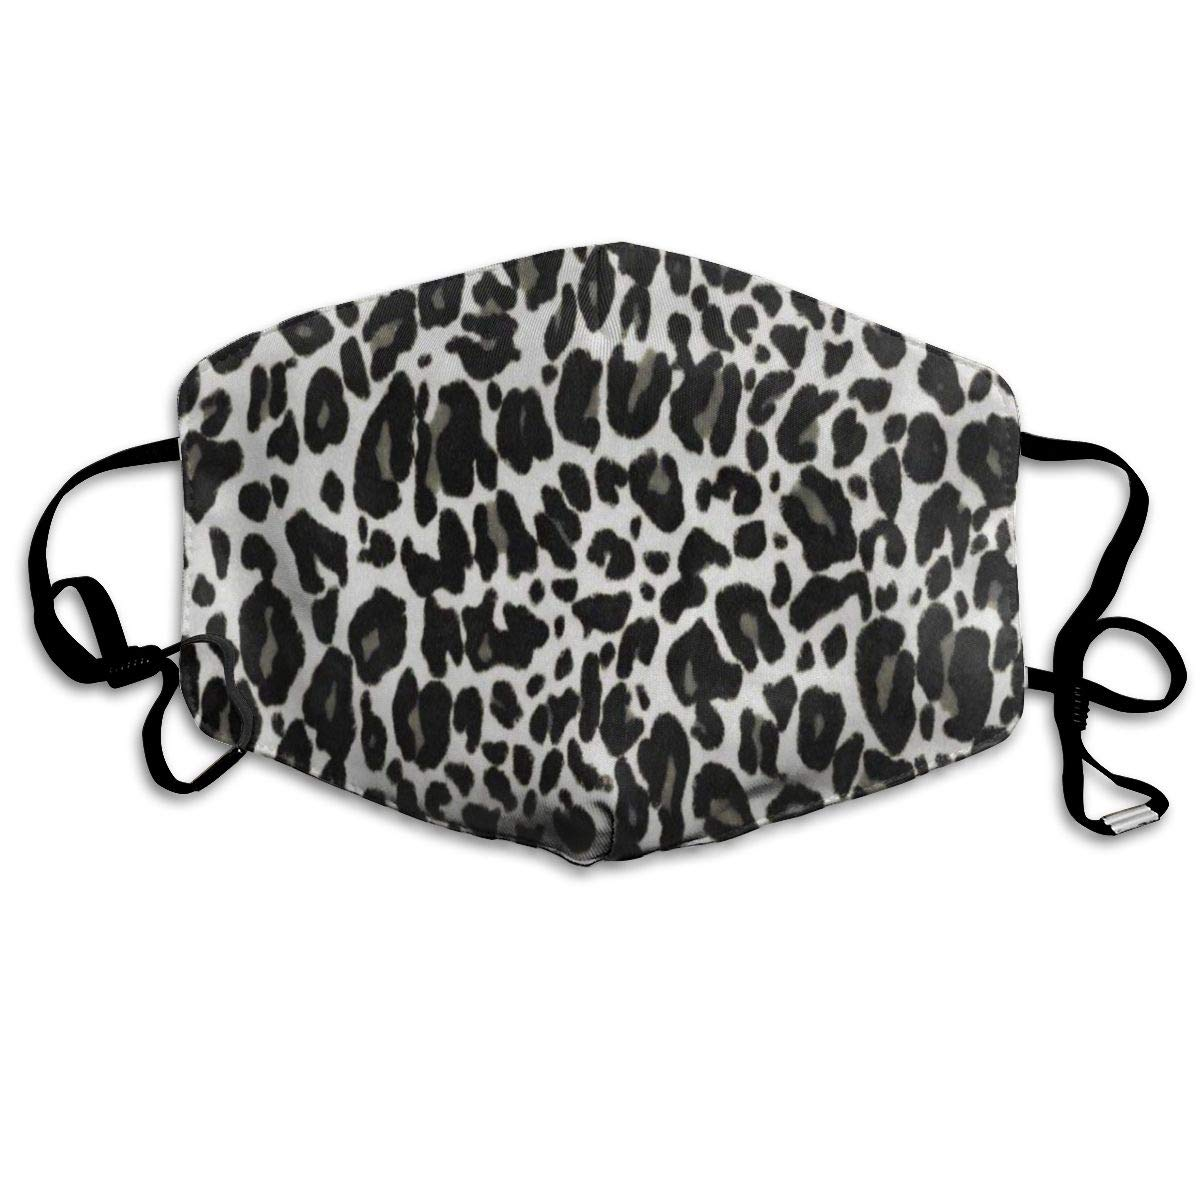 Hipster Animal Leopard Inspiring Dust Mouth Mask Reusable Anti-Dust Face Mask Adjustable Earloop Skin Protection